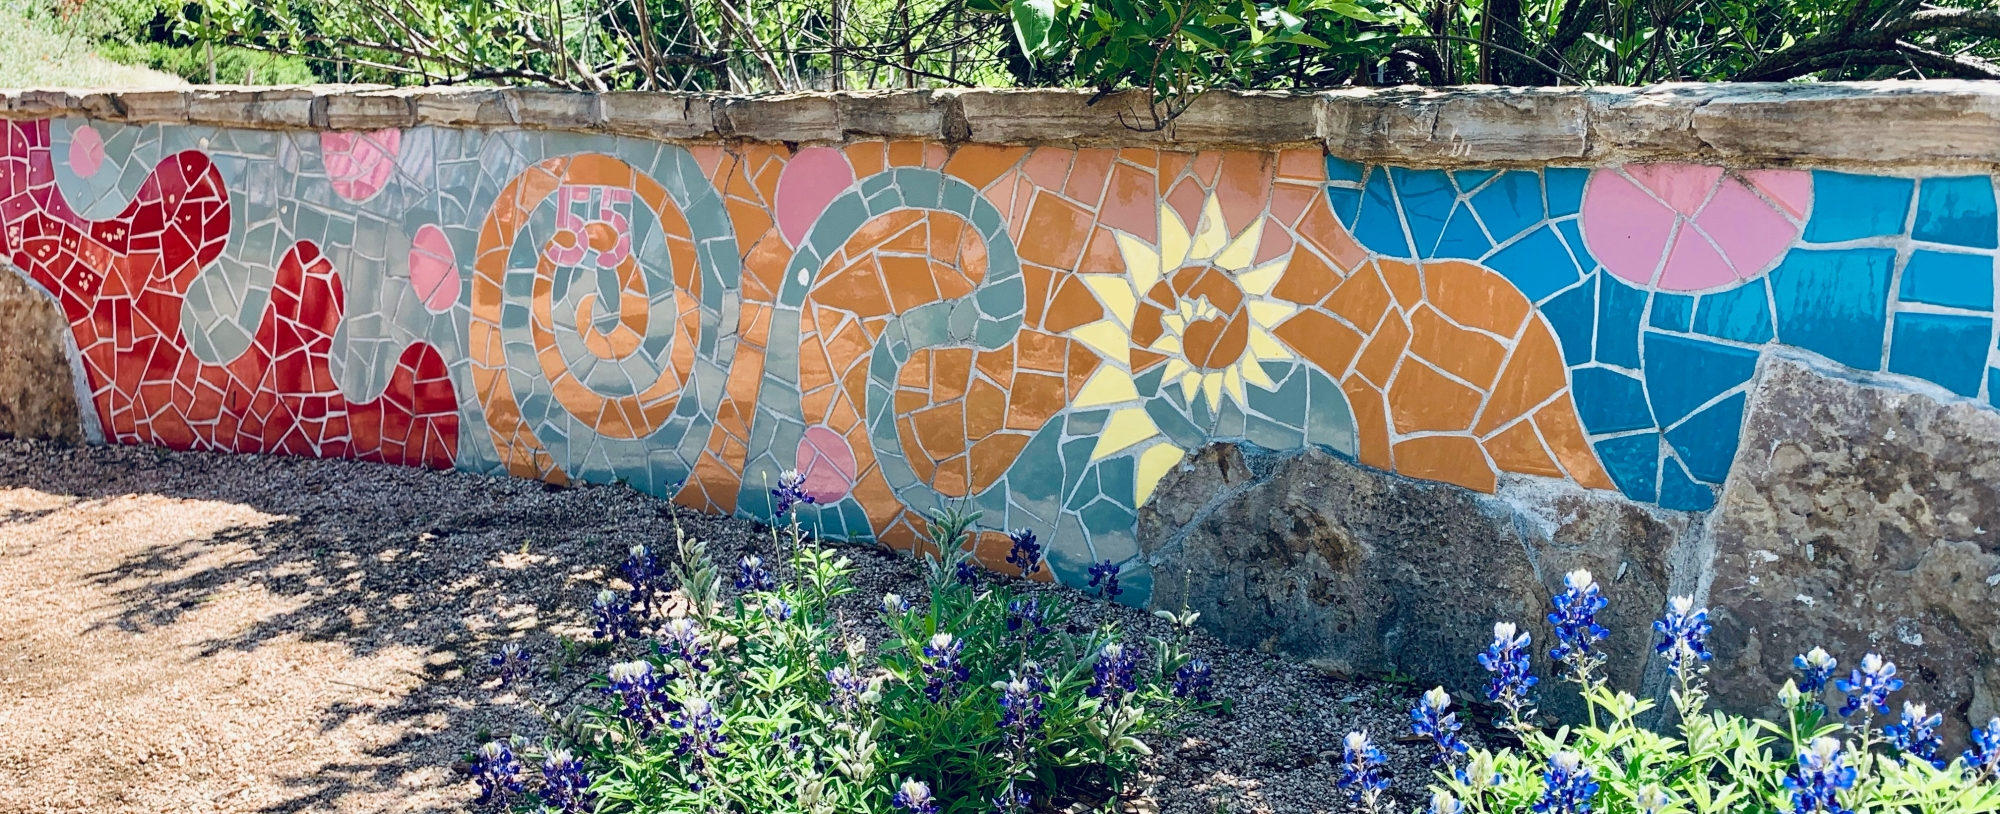 mosaic mural on low stone wall, with bluebonnet flowers